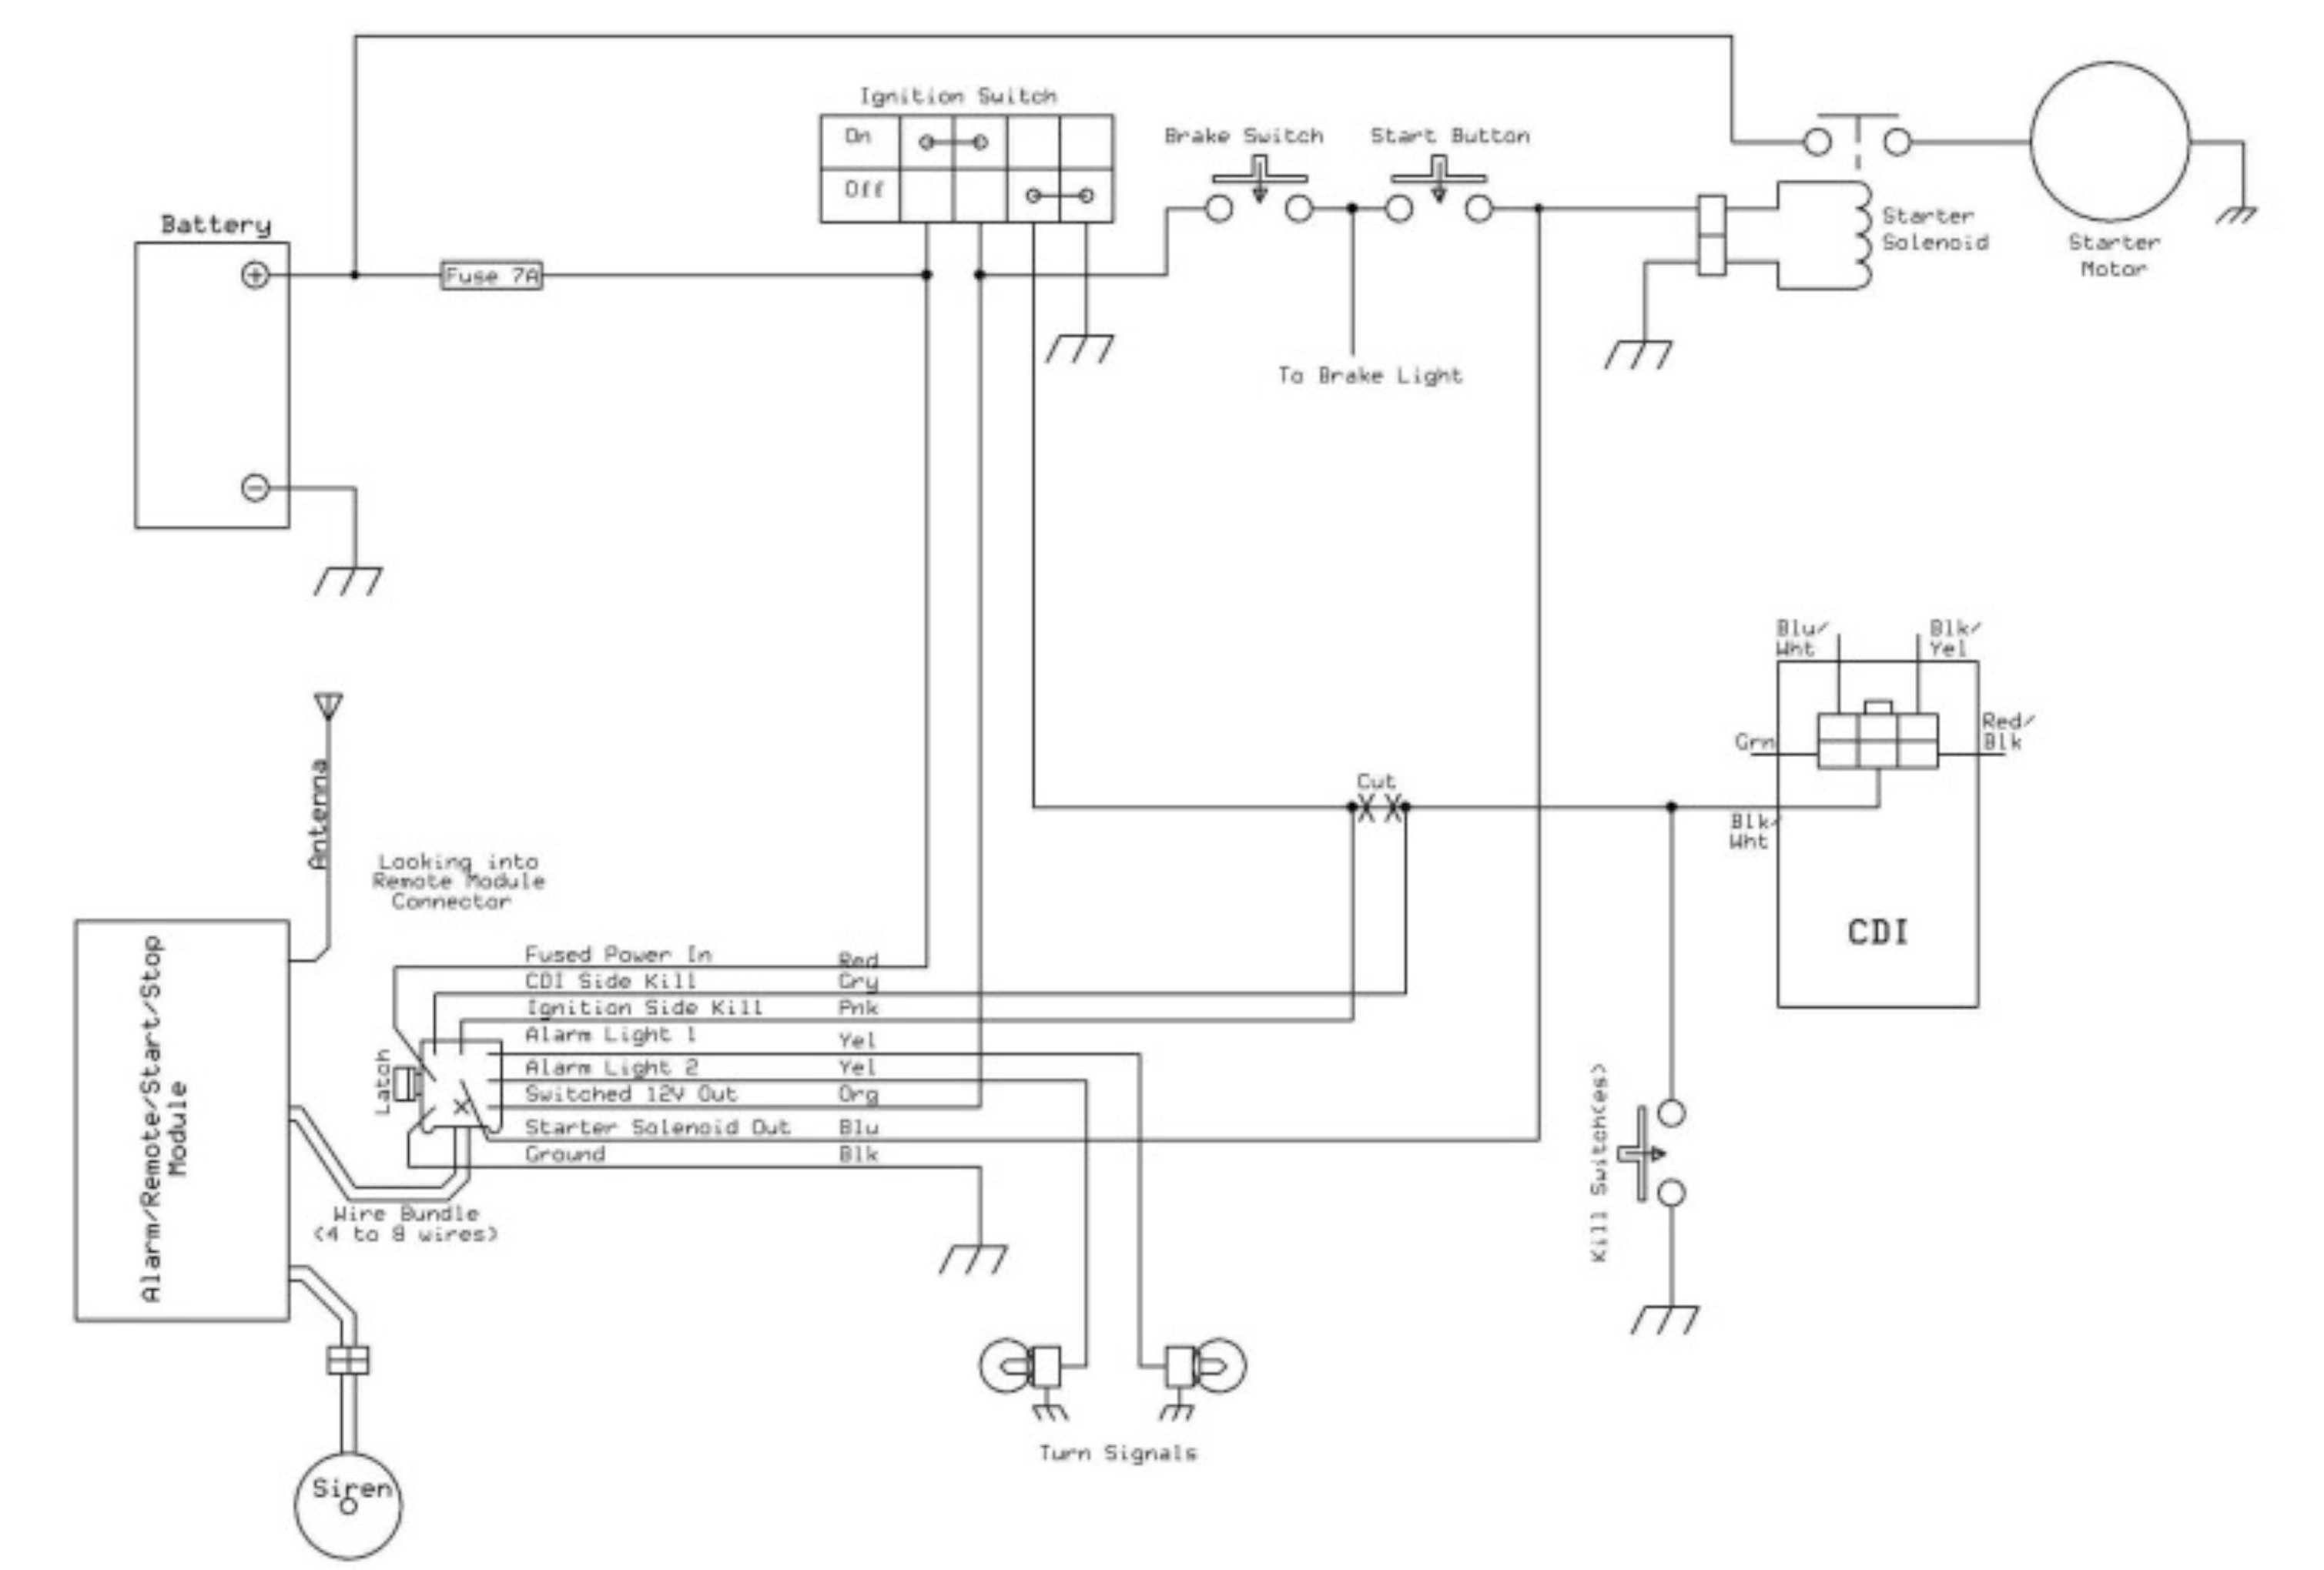 150cc atv wiring diagram trusted wiring diagram 4 pin cdi for 50cc atv wiring diagram residential electrical symbols u2022 coolster 150cc atv wiring diagram 150cc atv wiring diagram publicscrutiny